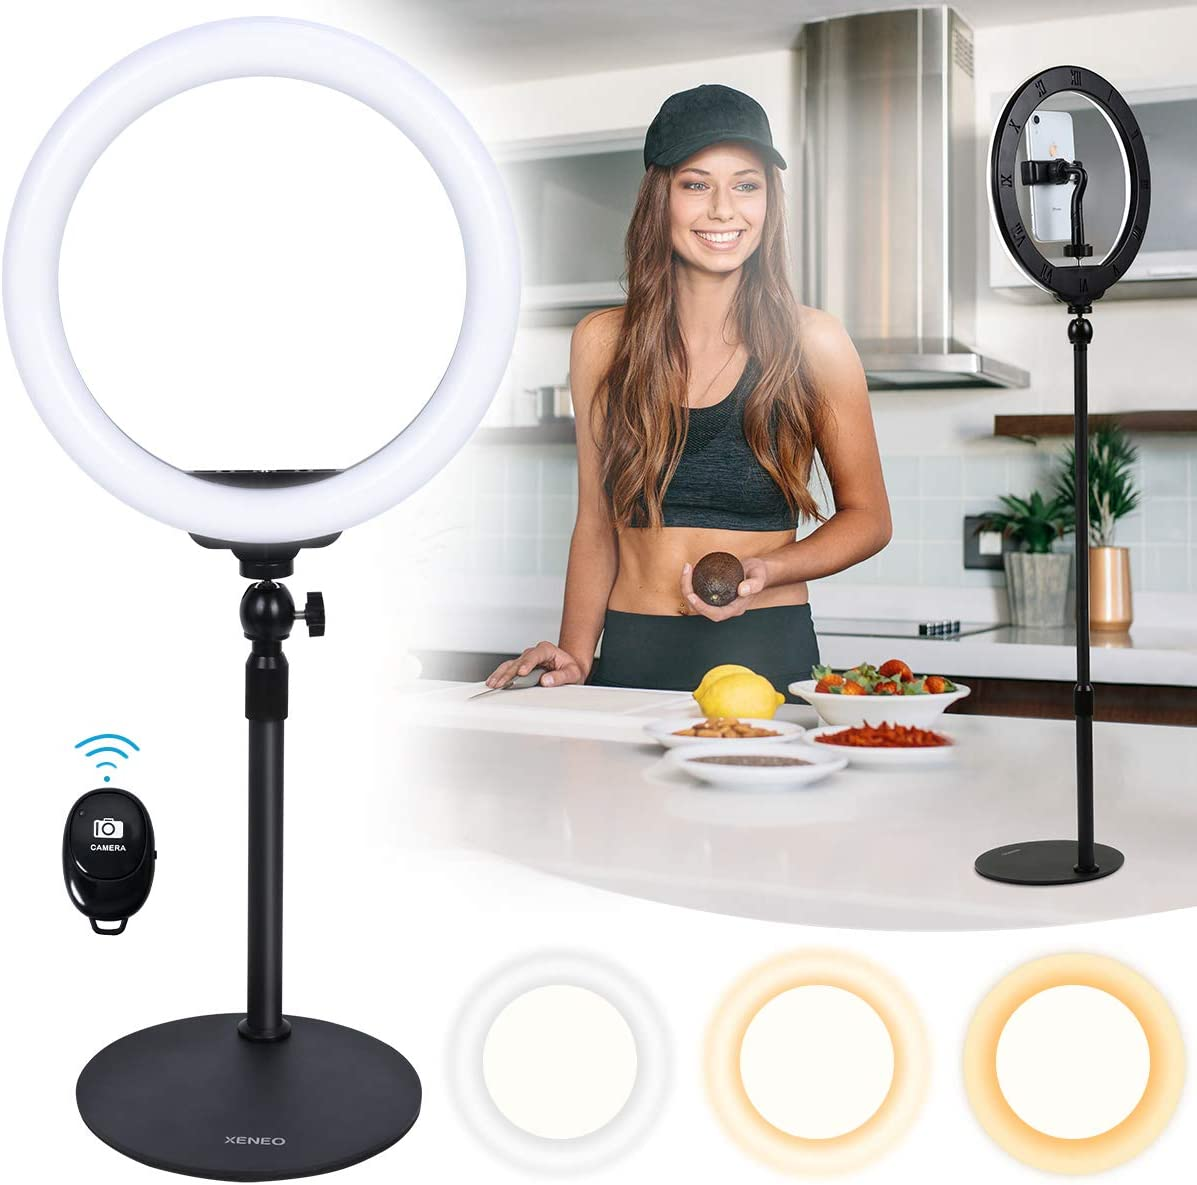 "Xeneo 10"" Desktop Selfie Ring Light with Stand and Phone Holder for iPhone Android, 3 Light Modes Dimmable LED Ringlight for YouTube/Video Shooting/Streaming/Makeup with Remote Shutter"